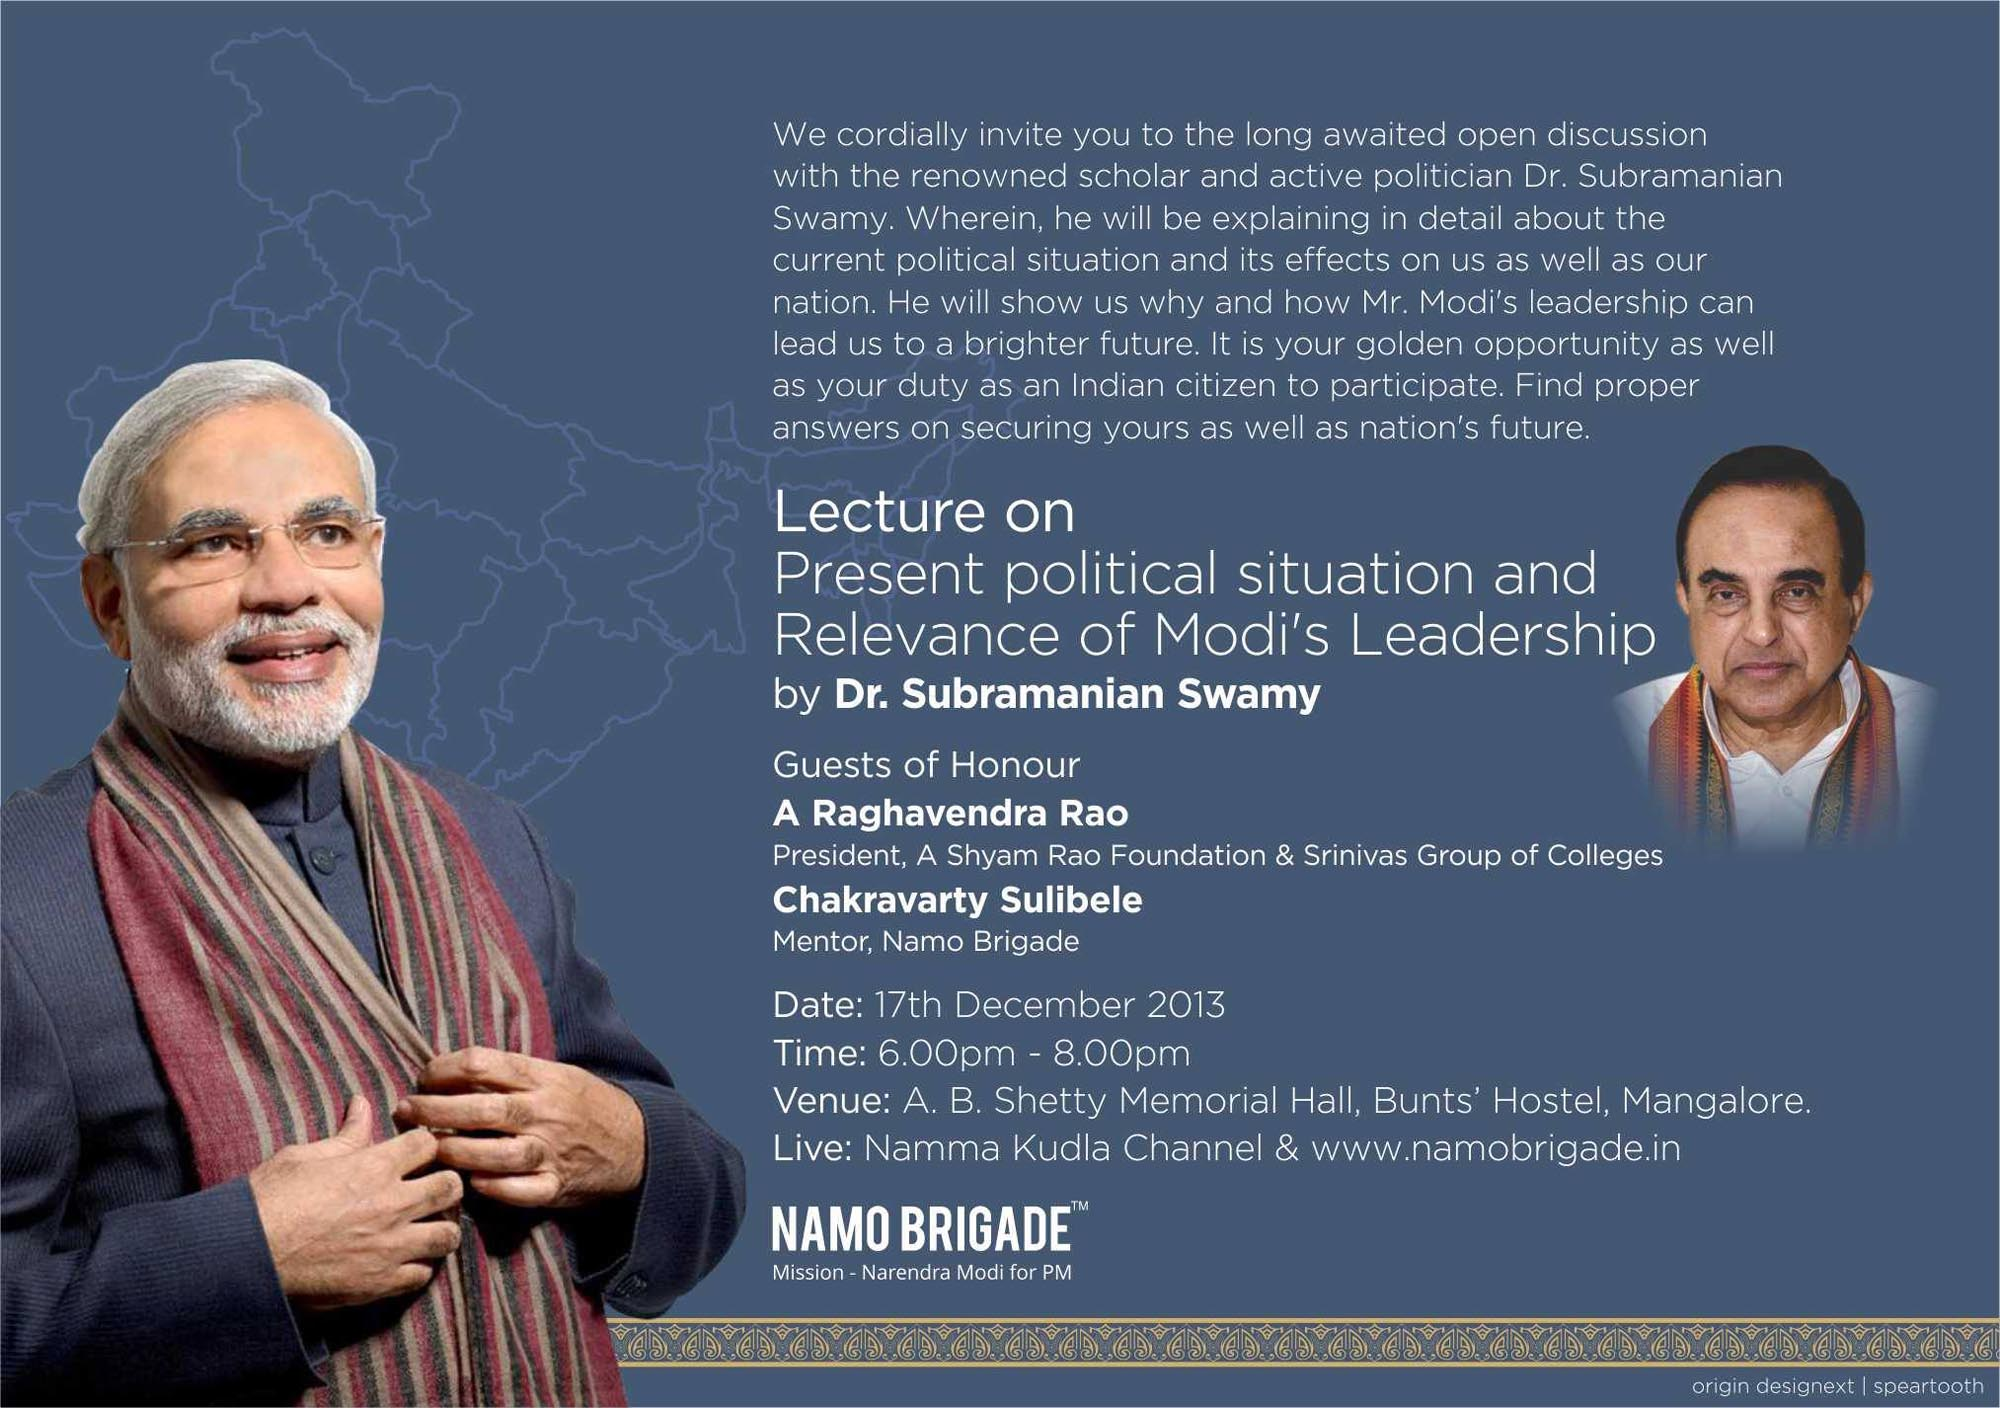 Lecture by Dr. Subramanian Swamy 17-12-2013 Mangalore